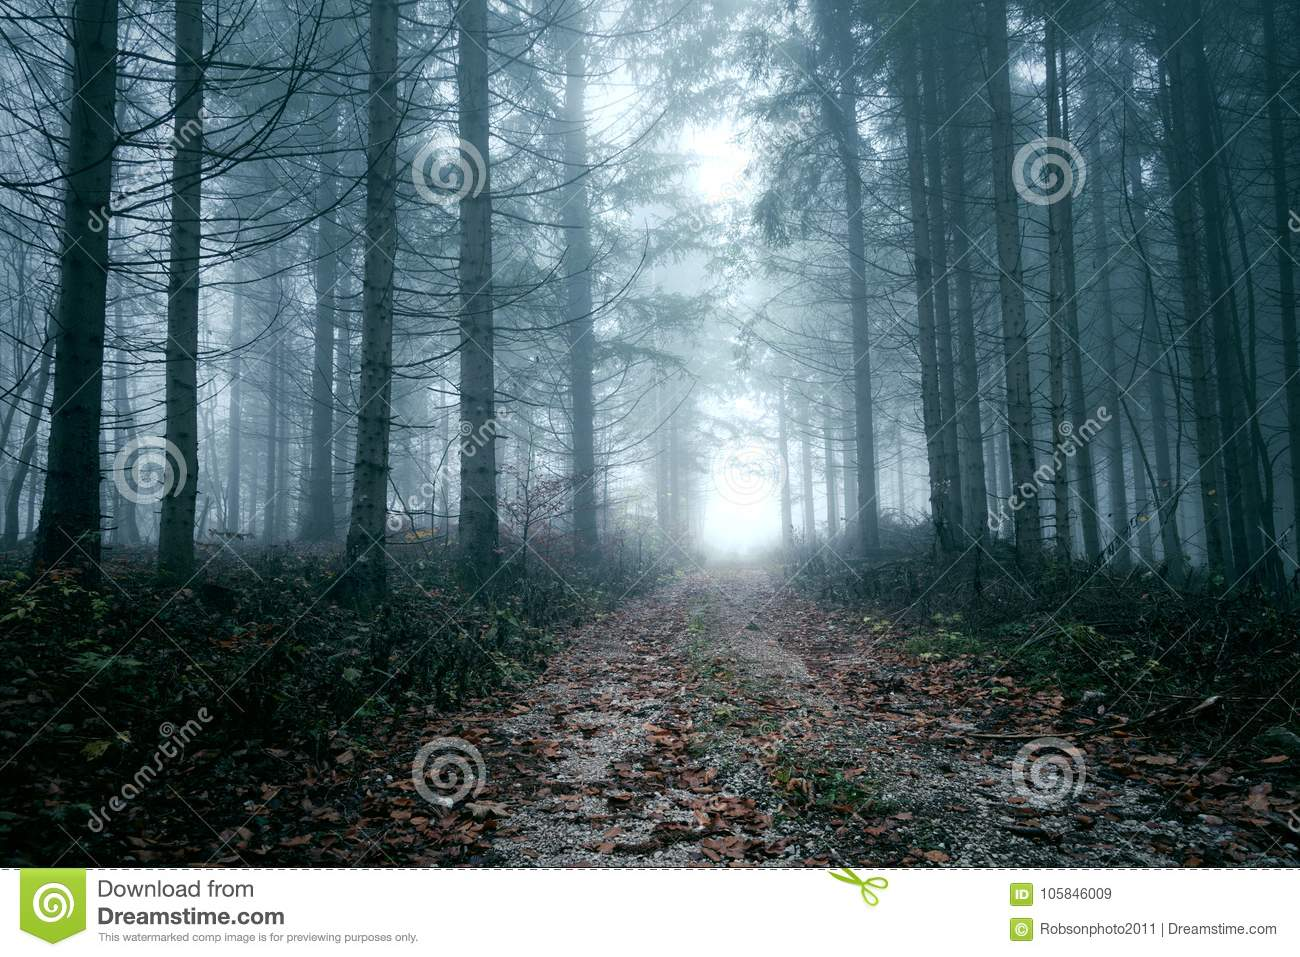 Dark Scary Foggy Forest Road Stock Image Image Of Mist Autumnal 105846009 Autumn fog trees forest alley road